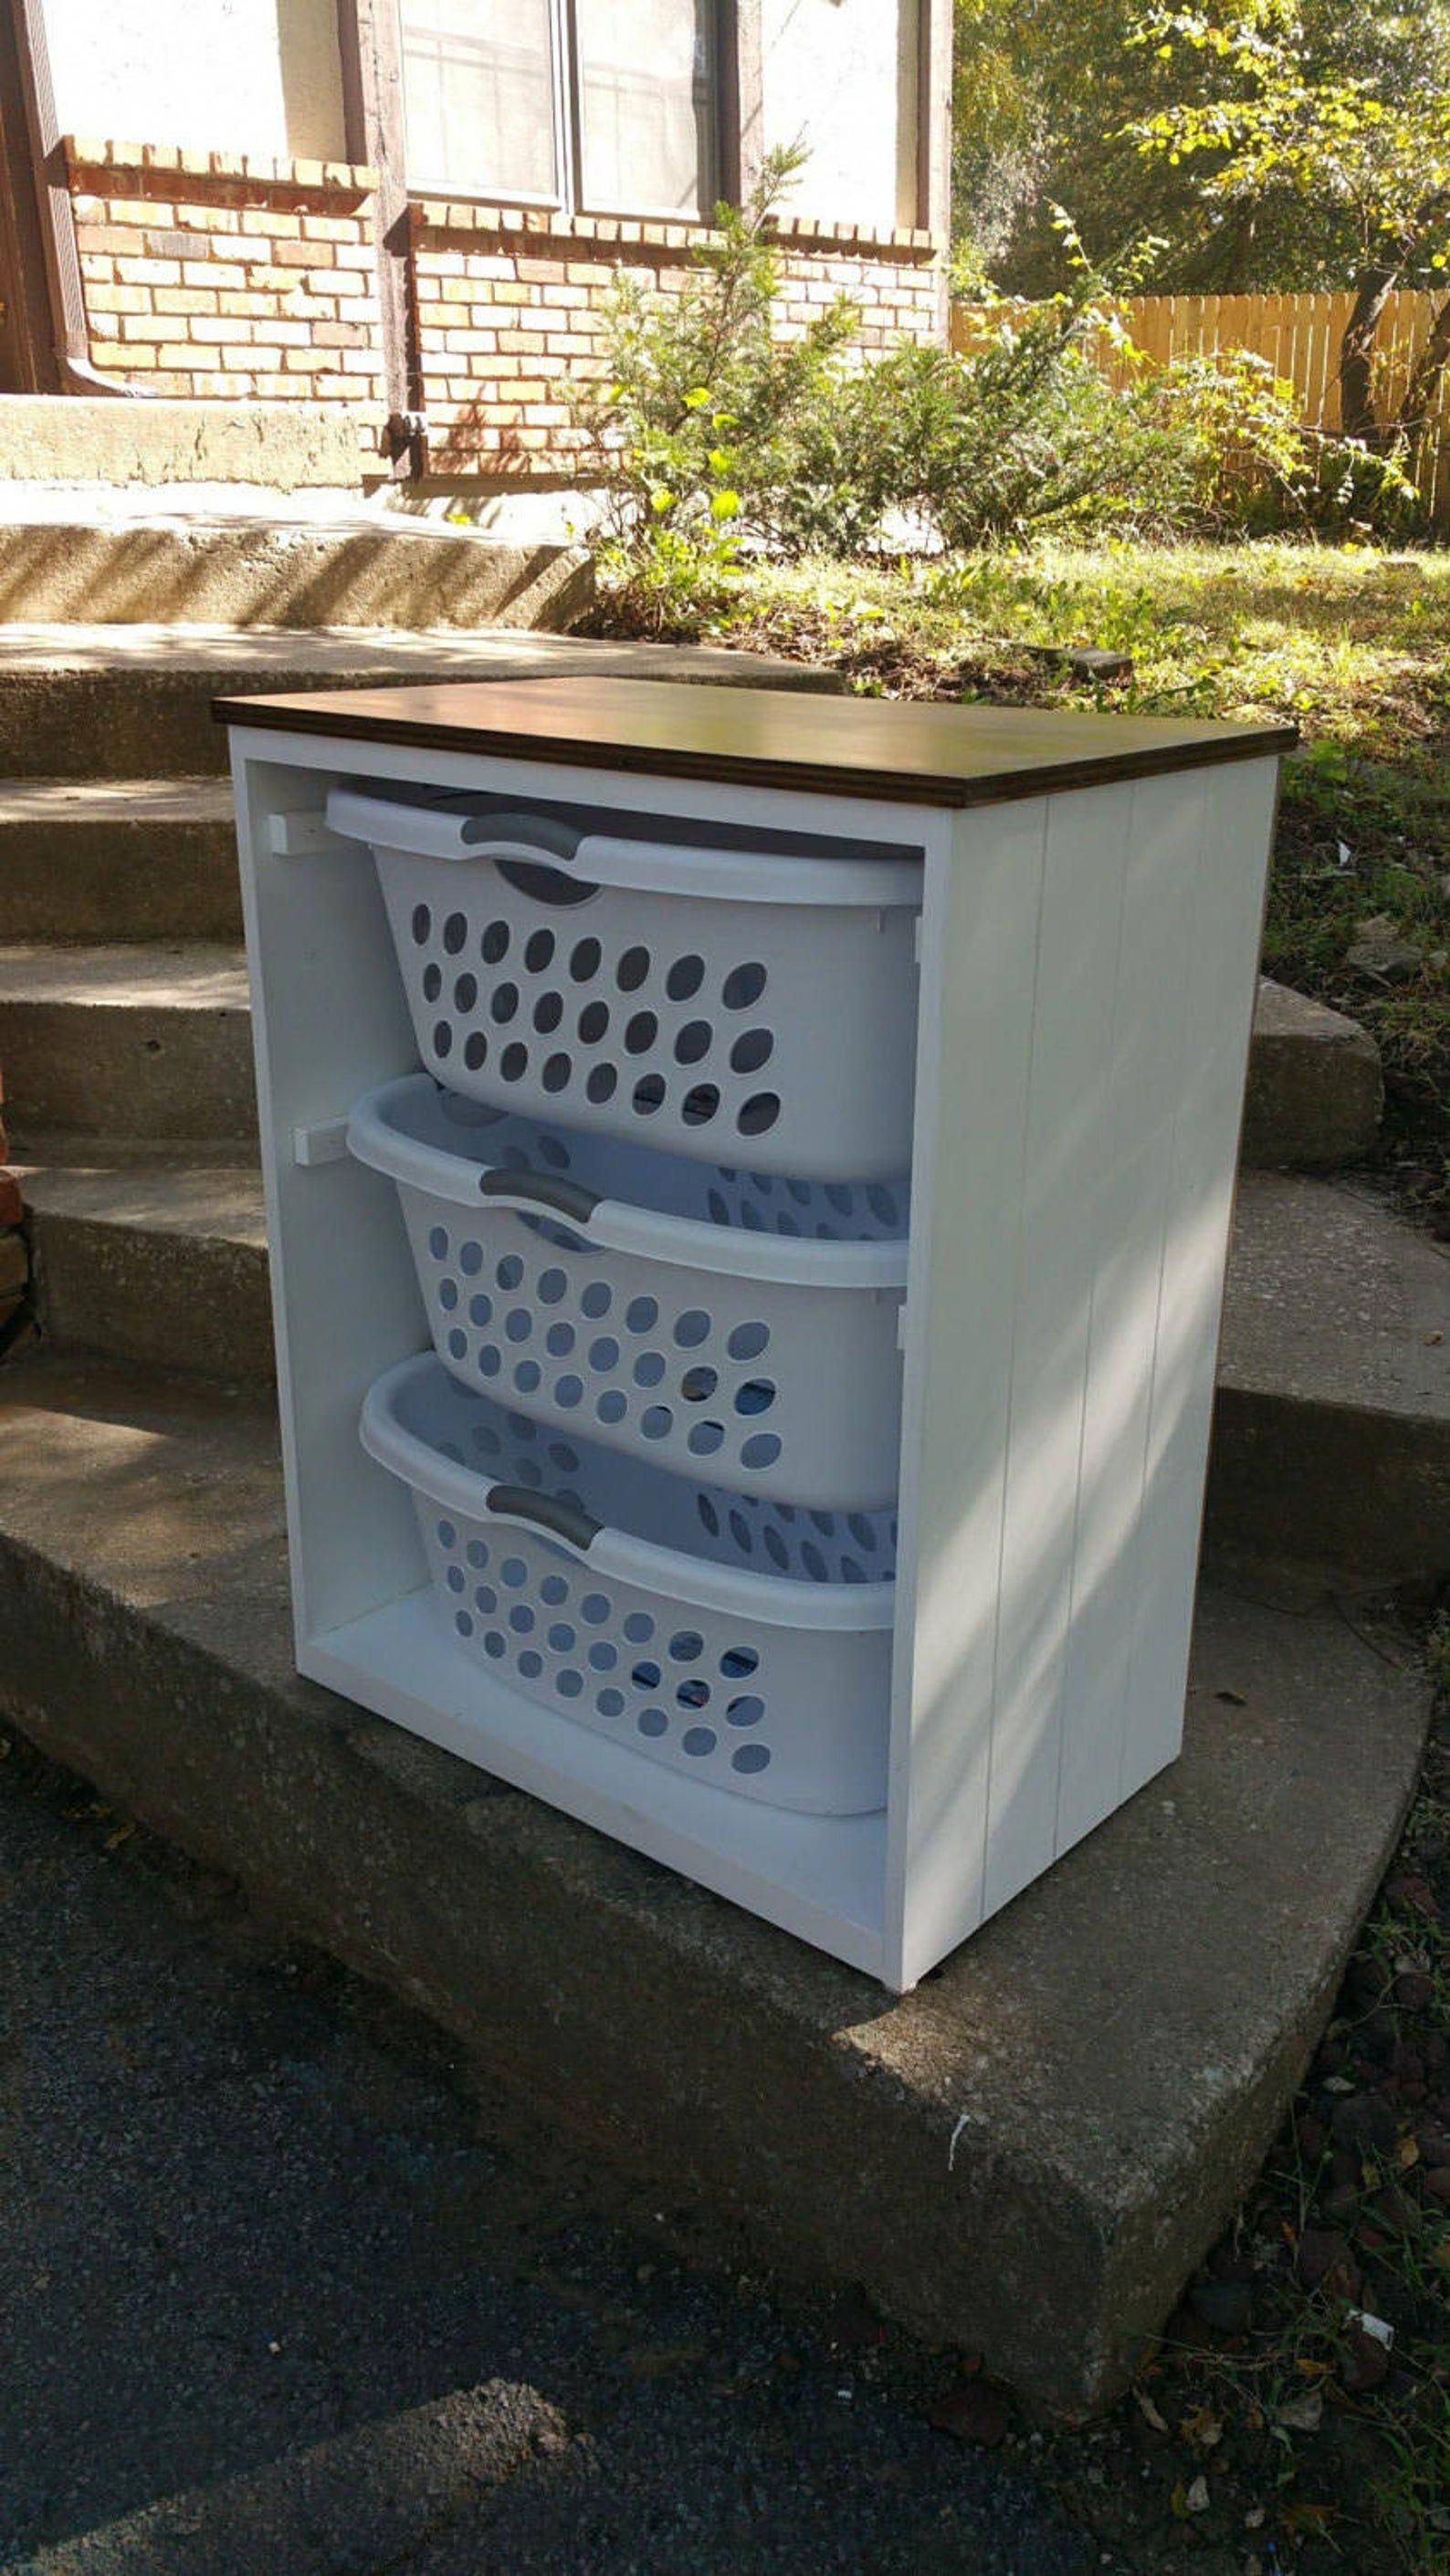 Fantastic Laundry Room Storage Ideas Diy Detail Is Readily Available On Our Internet Sit In 2020 Laundry Basket Holder Laundry Room Decor Laundry Basket Organization